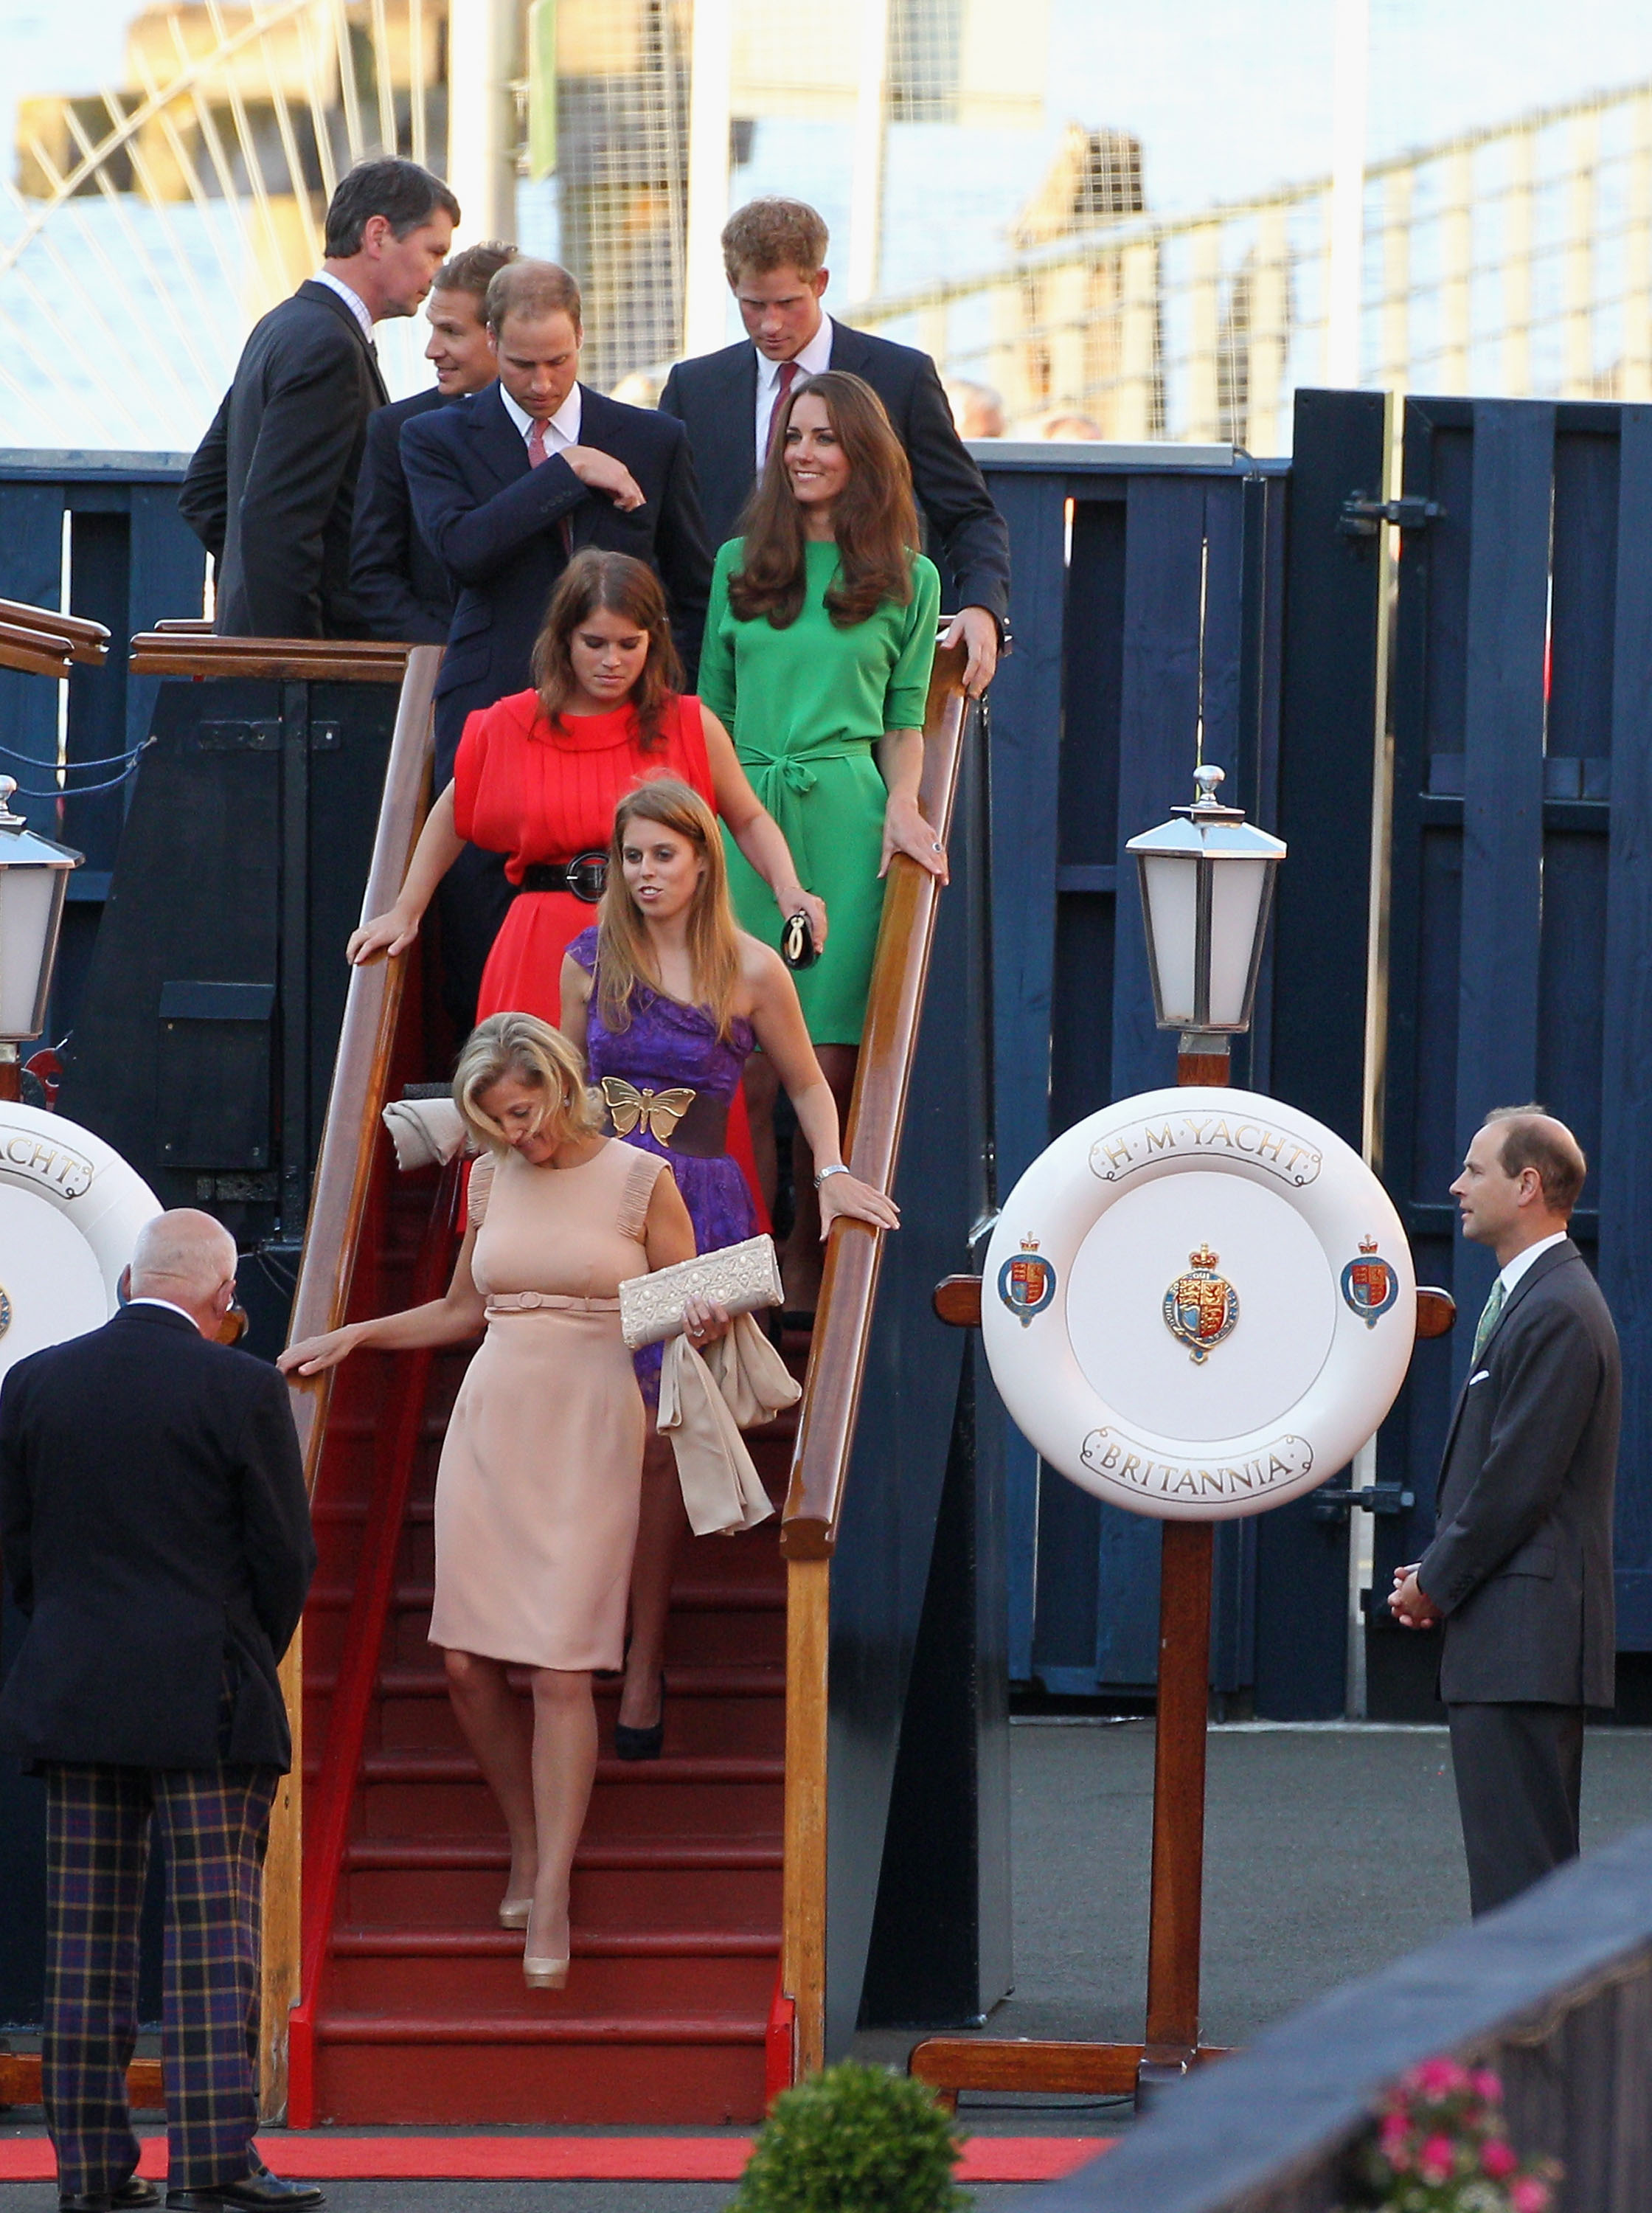 Dave Clark, Prince Harry, Prince William, Kate Middleton, Princess Eugenie, and Princess Beatrice disembark with Sophie of Wessex.